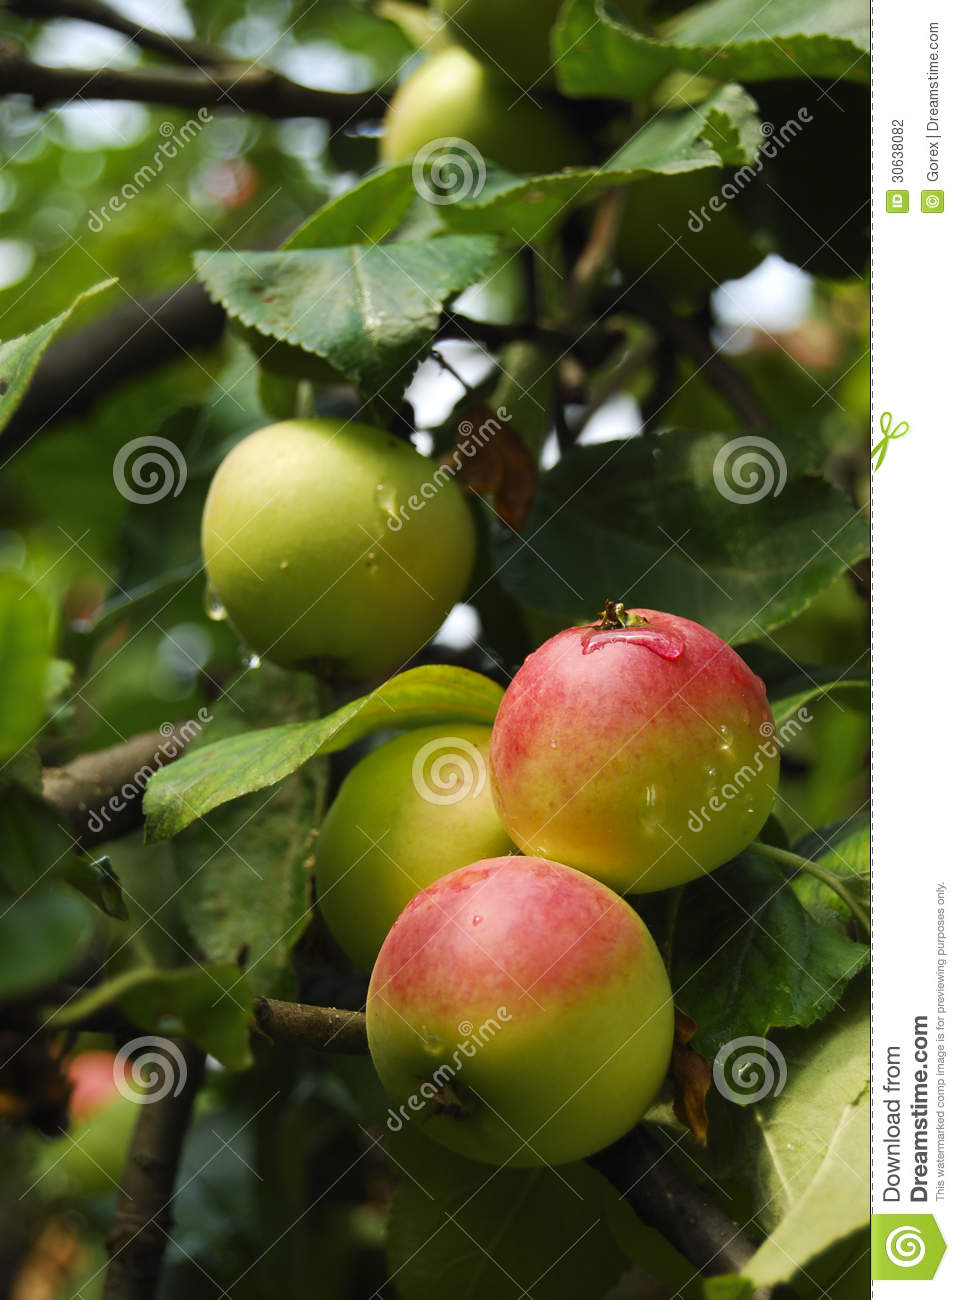 Apples On A Branch Stock Photography - Image: 30638082